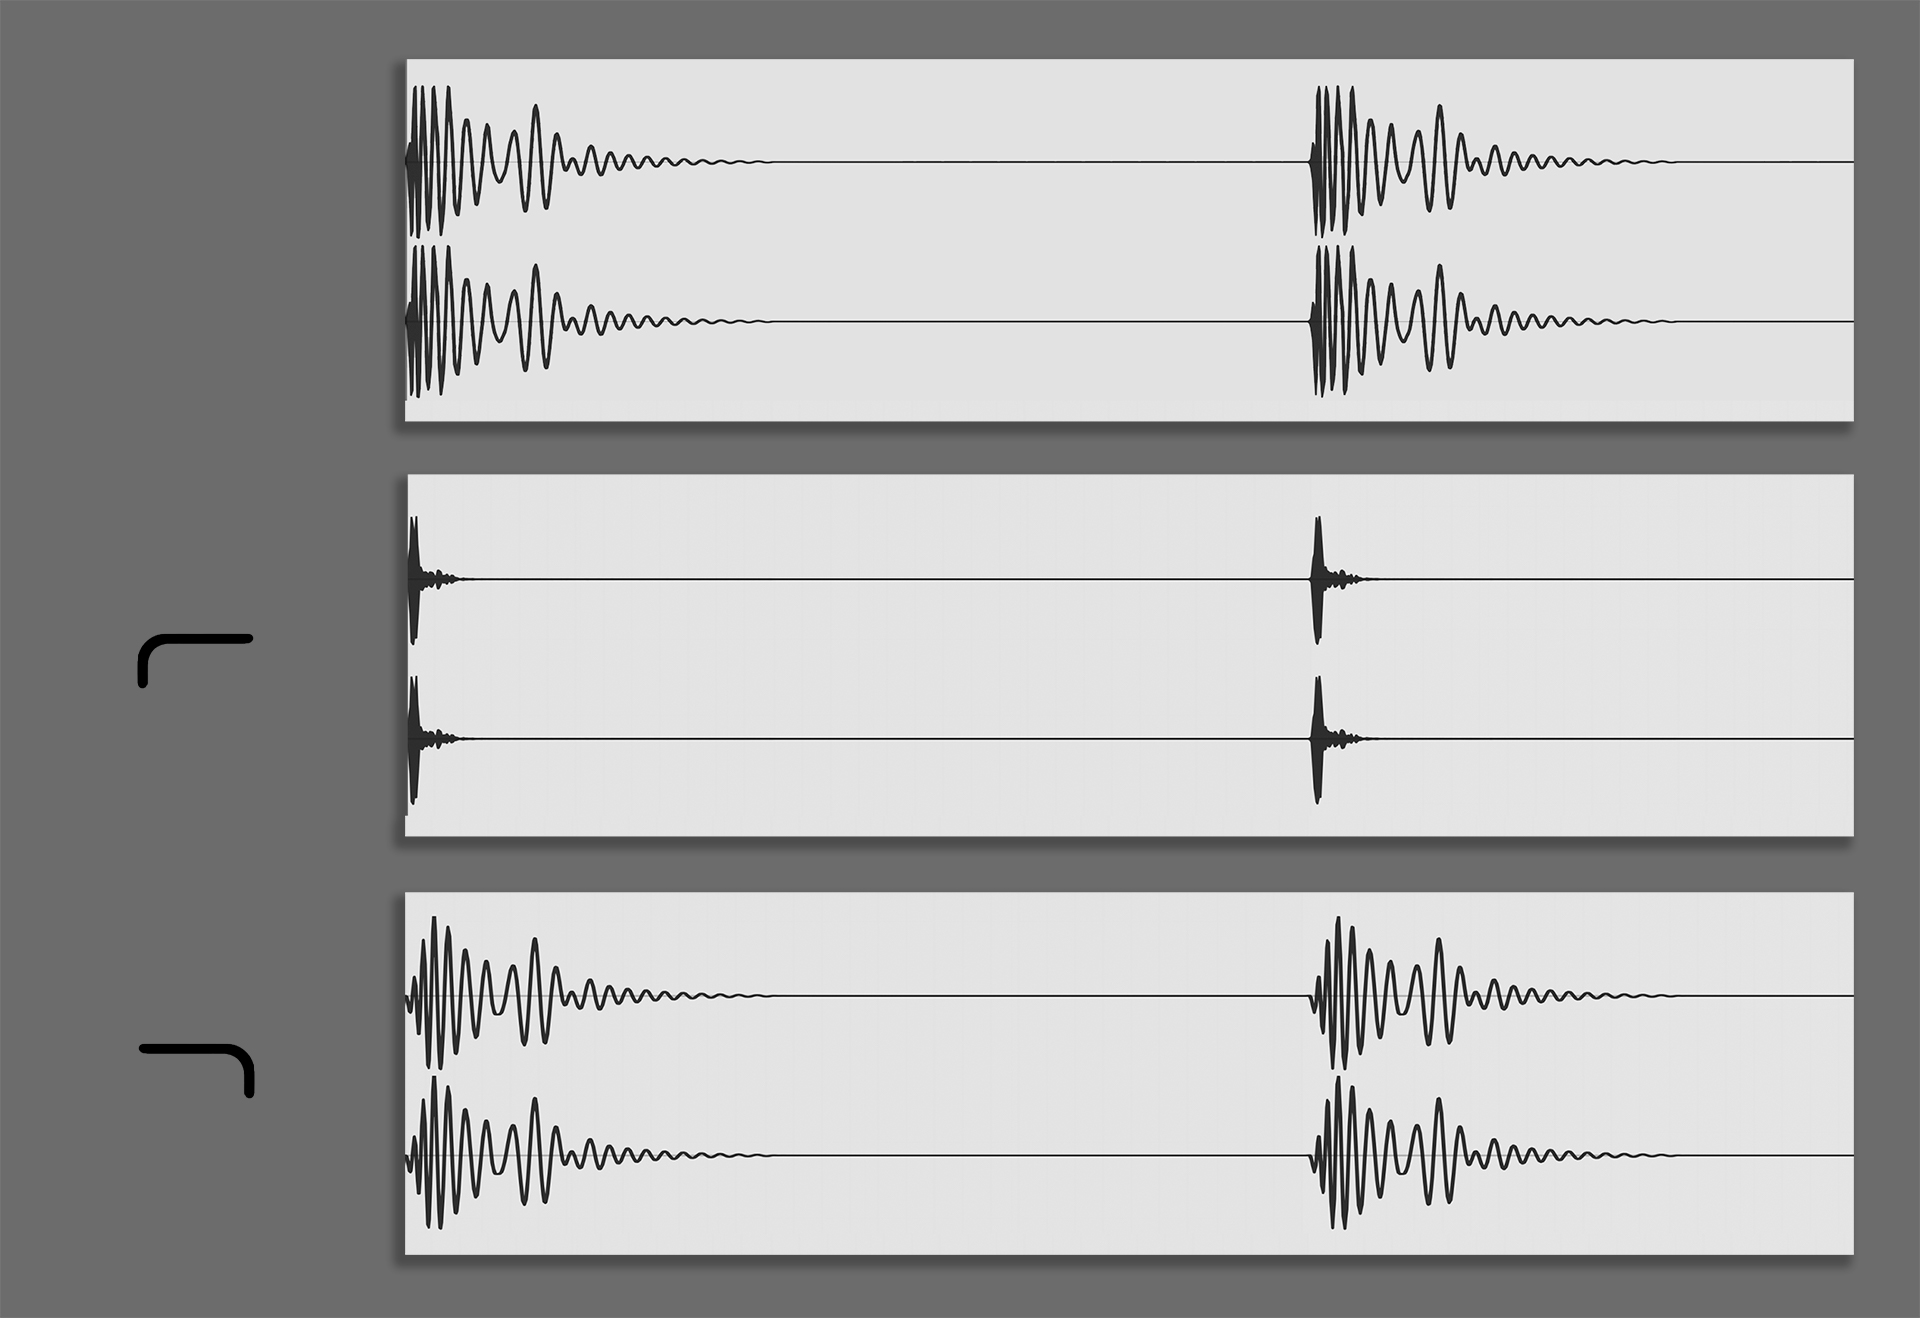 A kick sample ( top ) is broken into its component parts - a high-pass filter ( middle ) isolates the click (boosted for this image) and a low-pass shows the sustained bass portion of the sound ( bottom ).